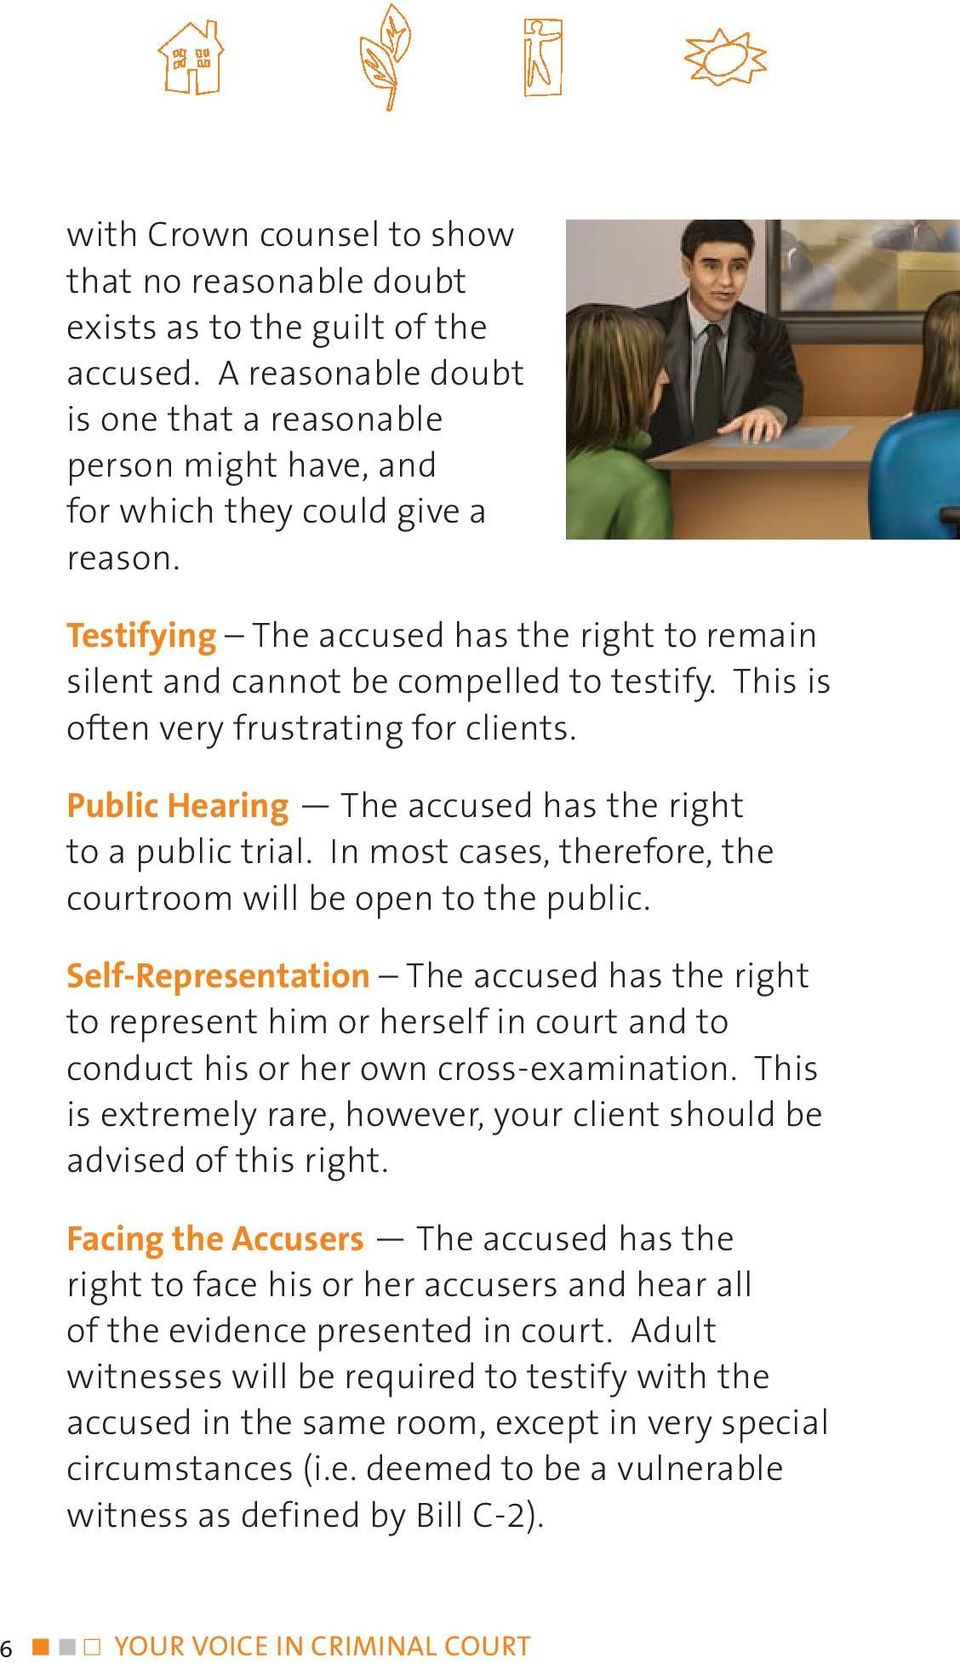 In most cases, therefore, the courtroom will be open to the public. Self-Representation The accused has the right to represent him or herself in court and to conduct his or her own cross-examination.